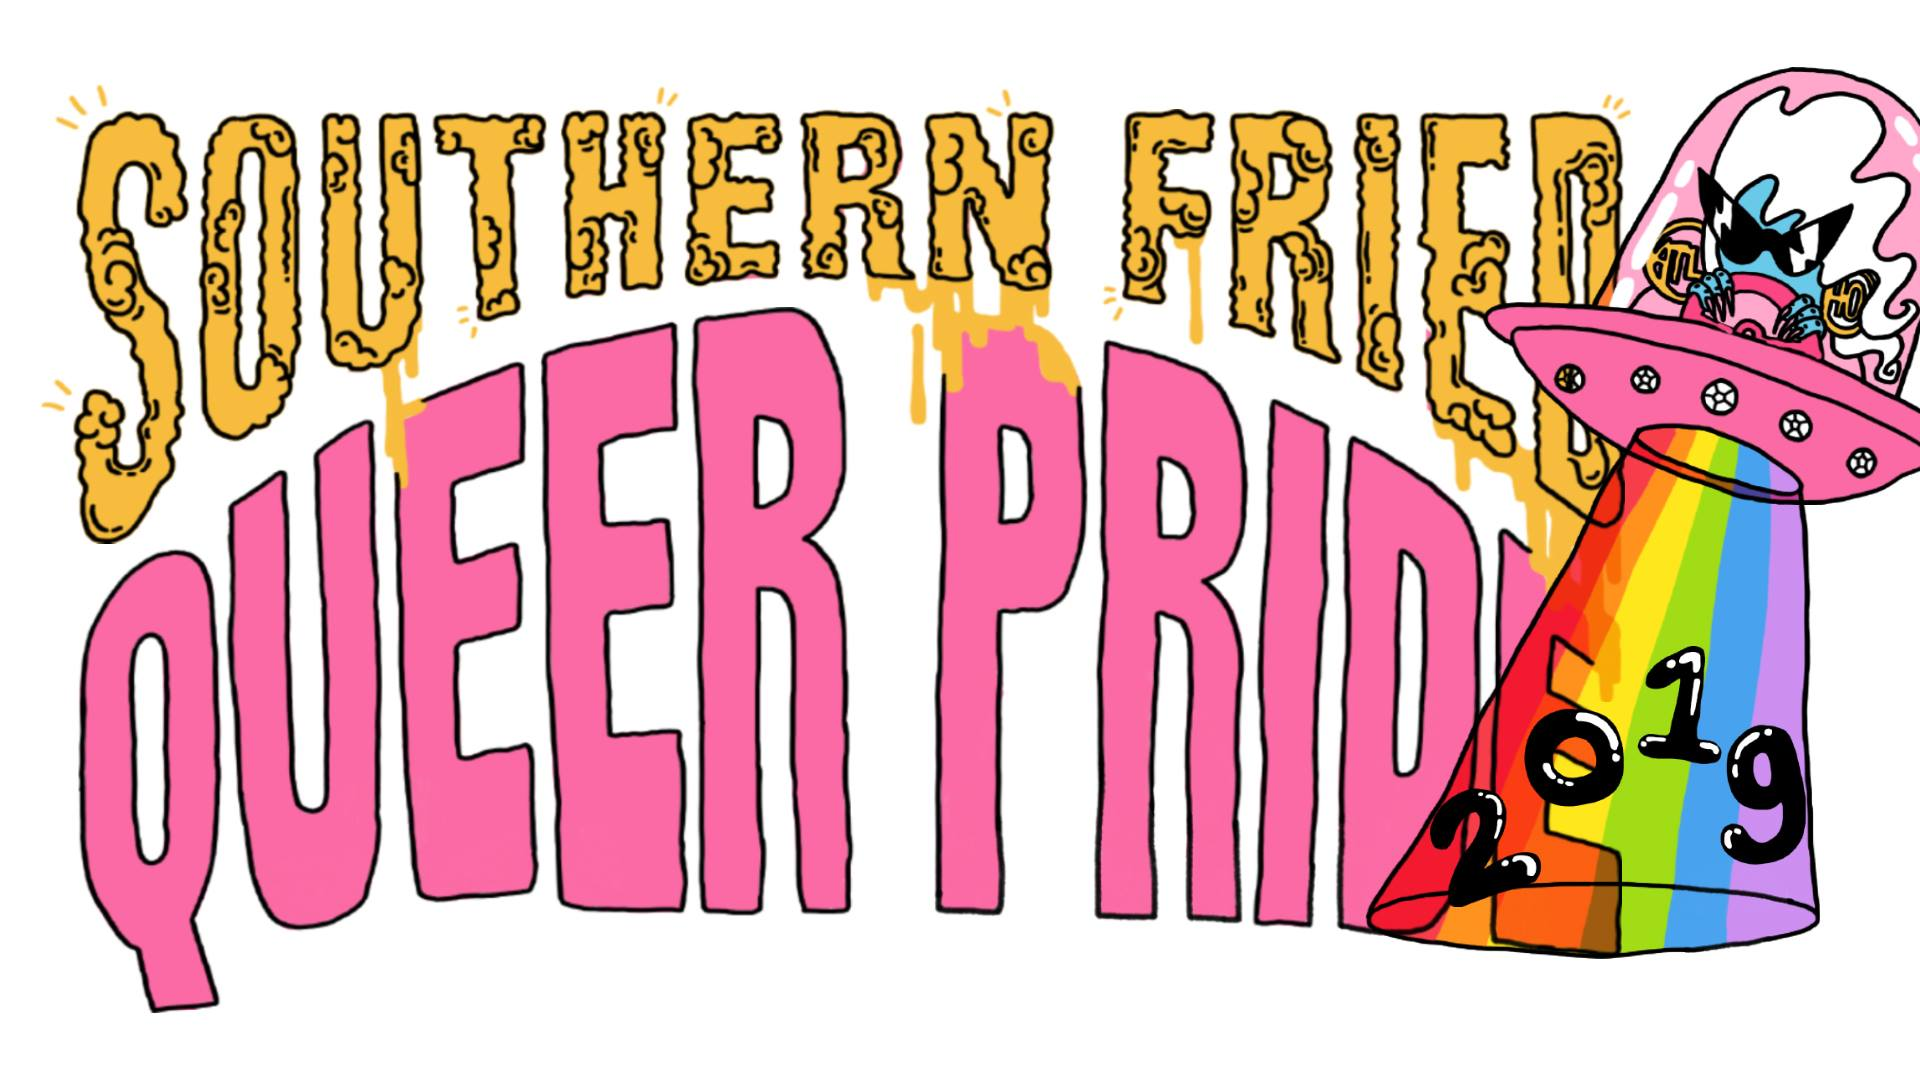 It's Southern Fried Queer Pride Wed-Sun at The Bakery!